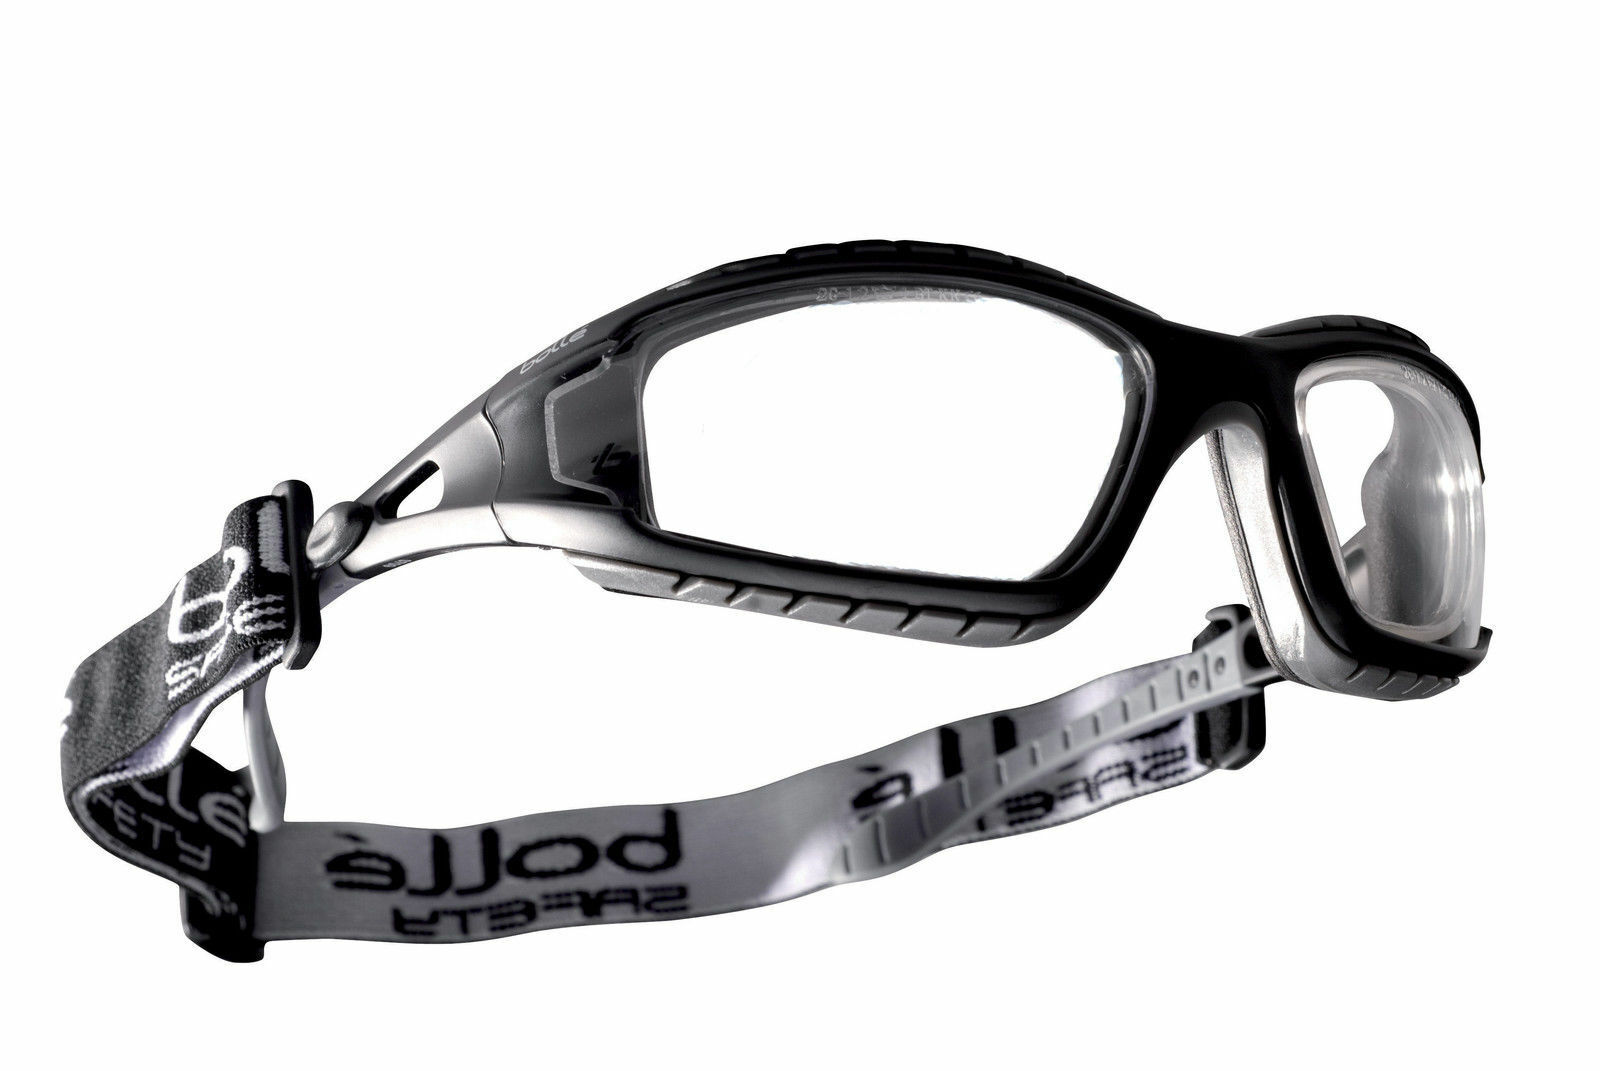 BOLLE CLEAR LENS SAFETY GLASSES, PredECTIVE EYE WEAR GOGGLES TRACPSI RDG